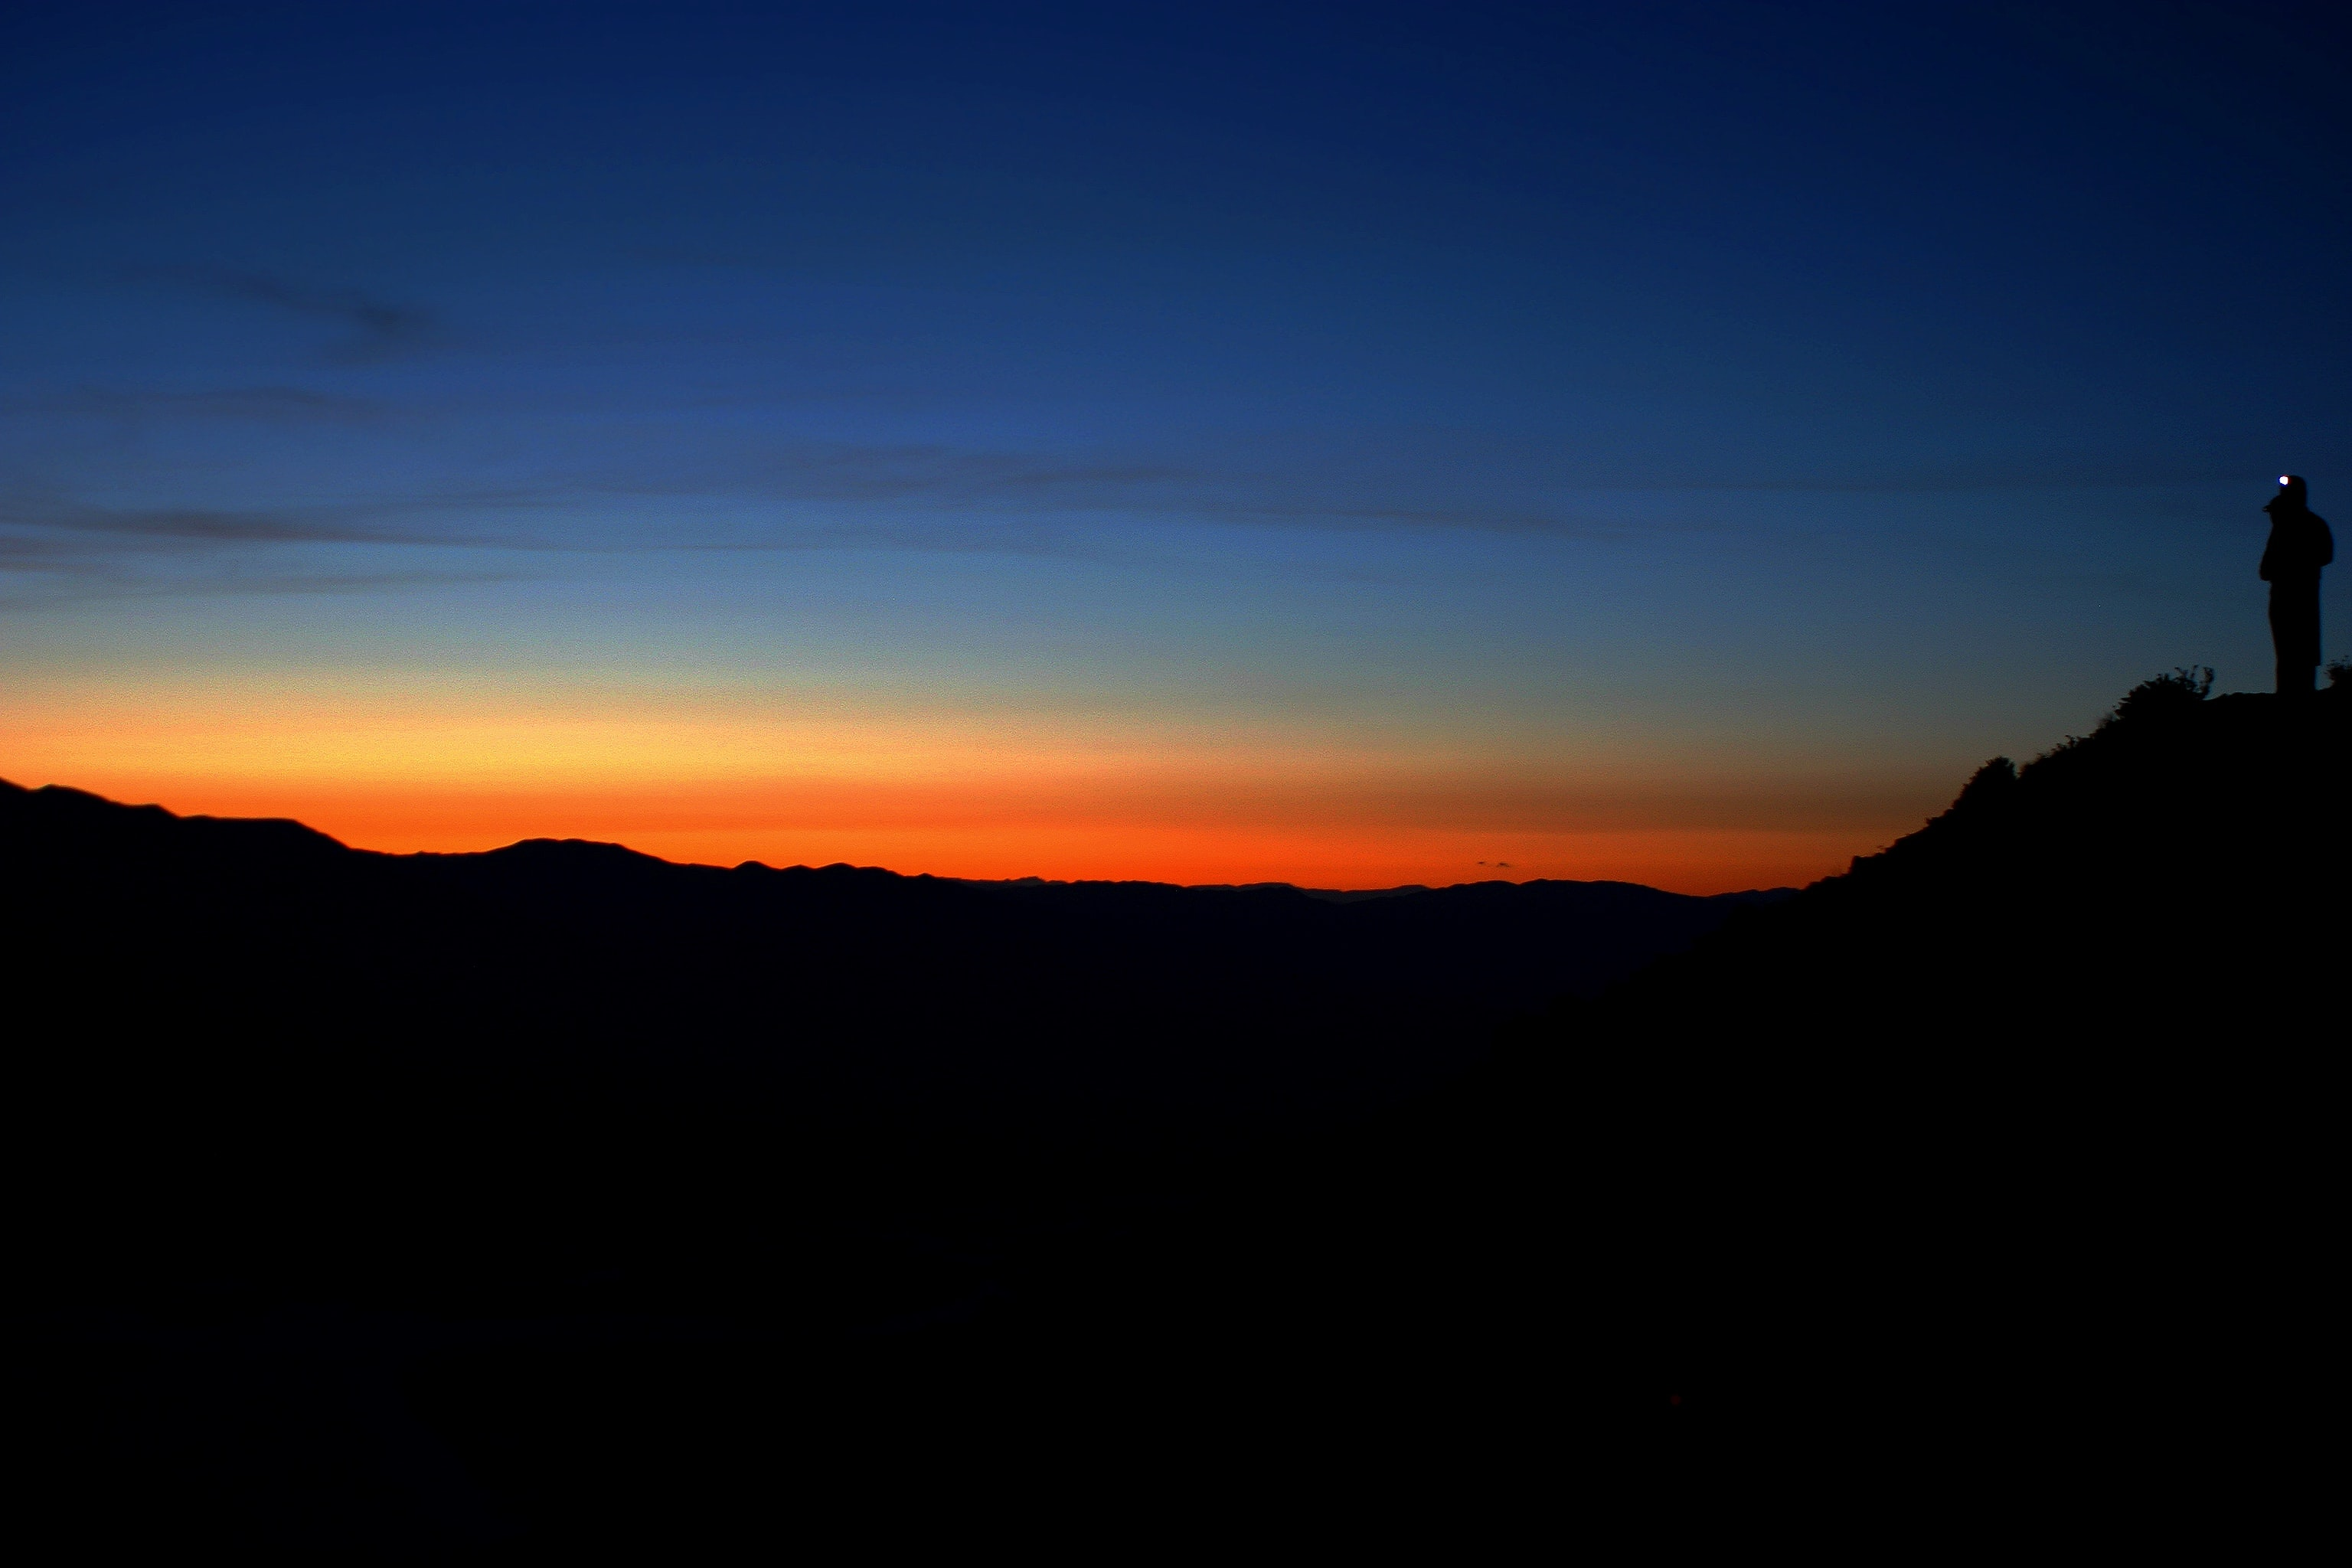 The sun rising along the horizon with a dark sky and silhouette of the skyline